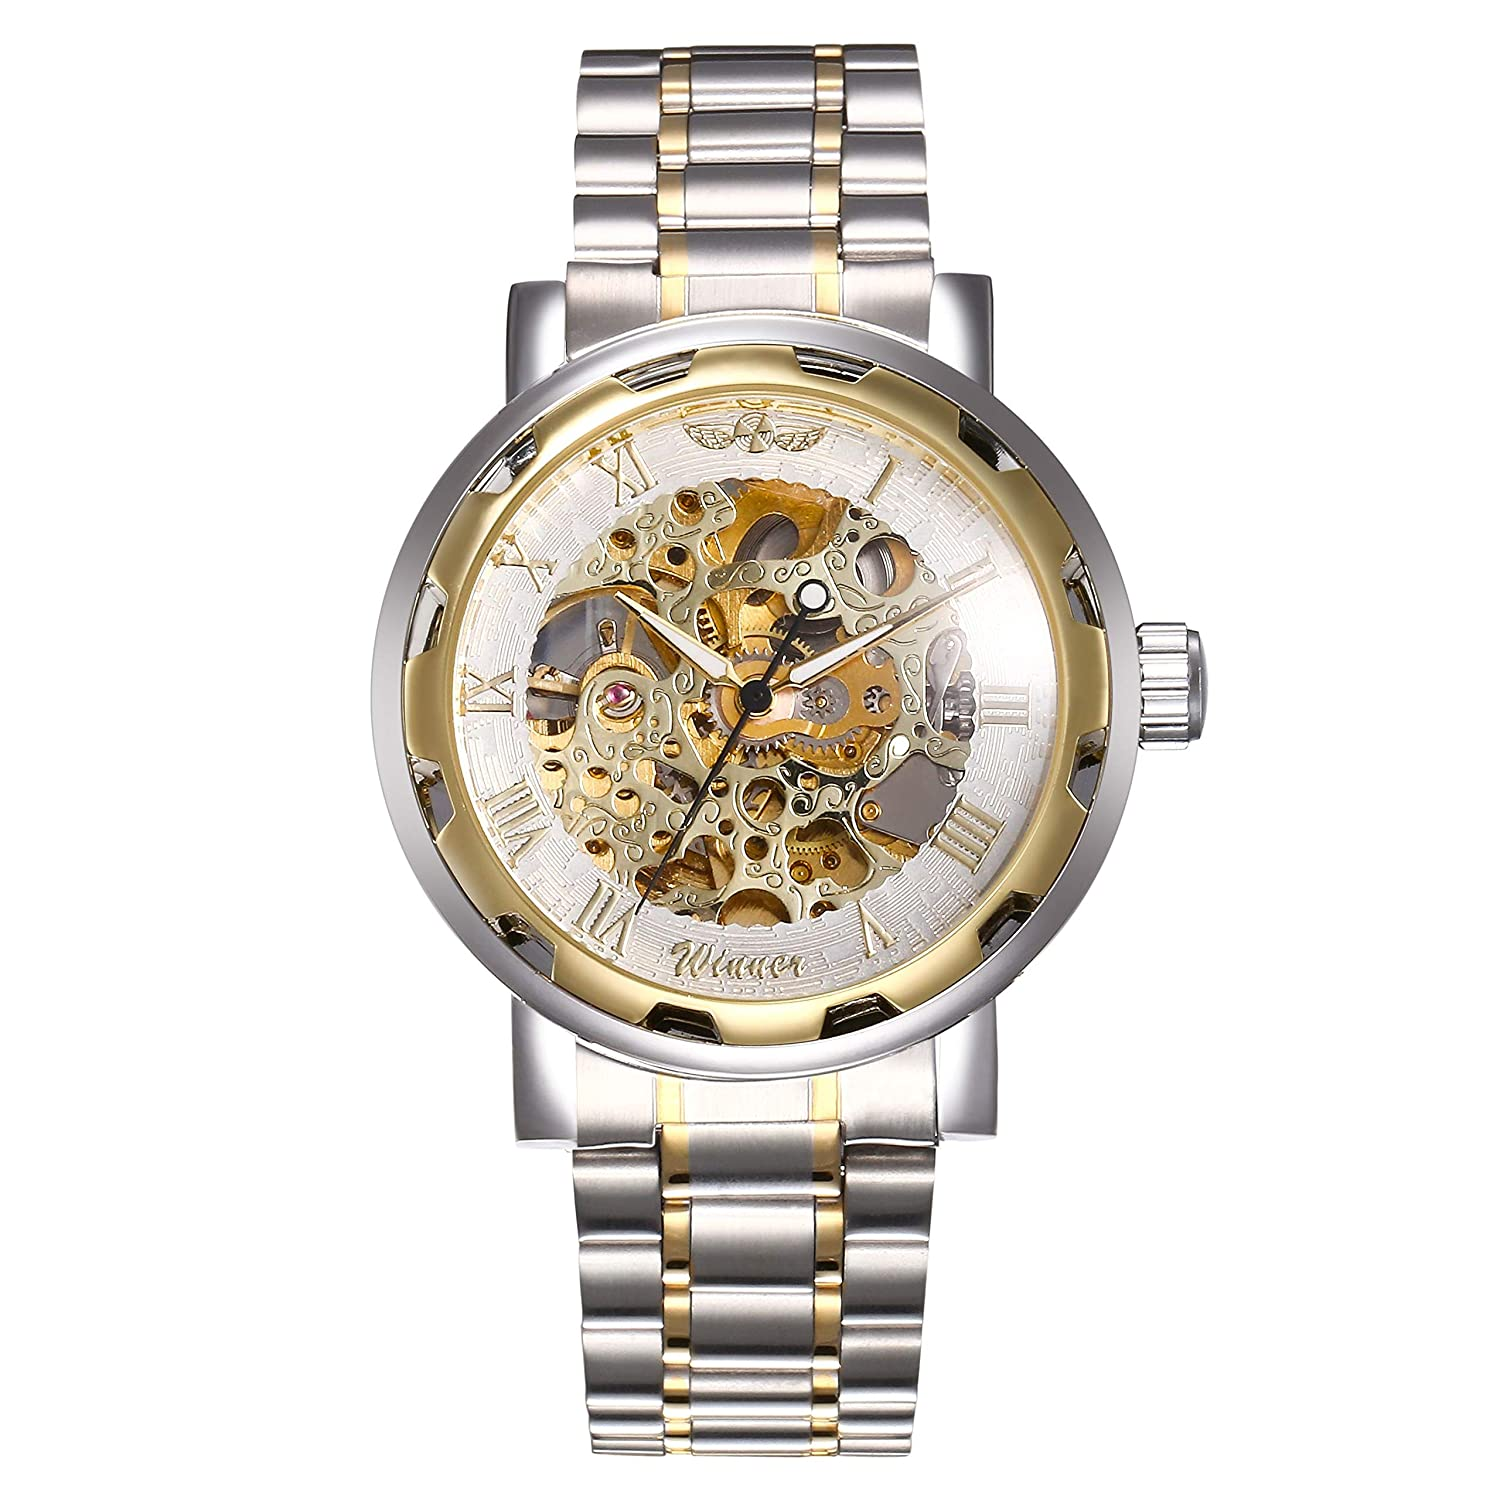 Winner Analogue Gold Dial Men's Watch -Mechanicalchainrosegoldwatch